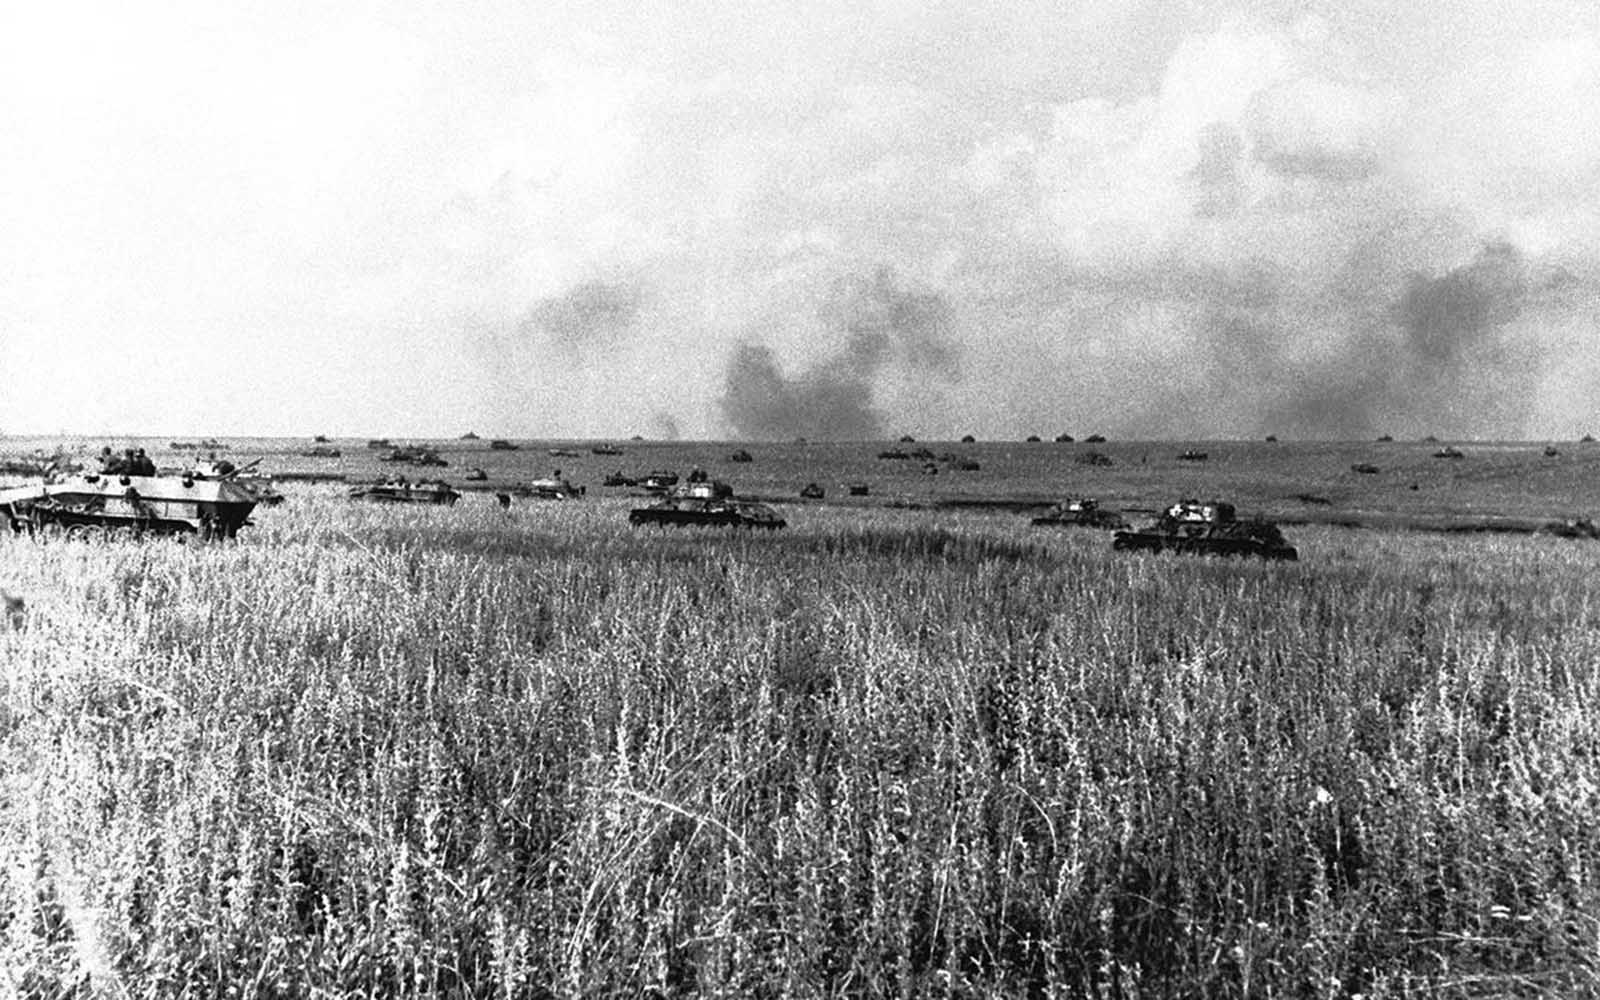 Huge numbers of German tanks concentrate for a new attack on Soviet fortifications on July 28, 1943, during the Battle of Kursk. After taking months to prepare for the offensive, German forces fell far short of their objectives - the Soviets, having been aware of their plans, had built massive defenses. After the German defeat at Kursk, the Red Army would effectively have the upper hand for the rest of the war.